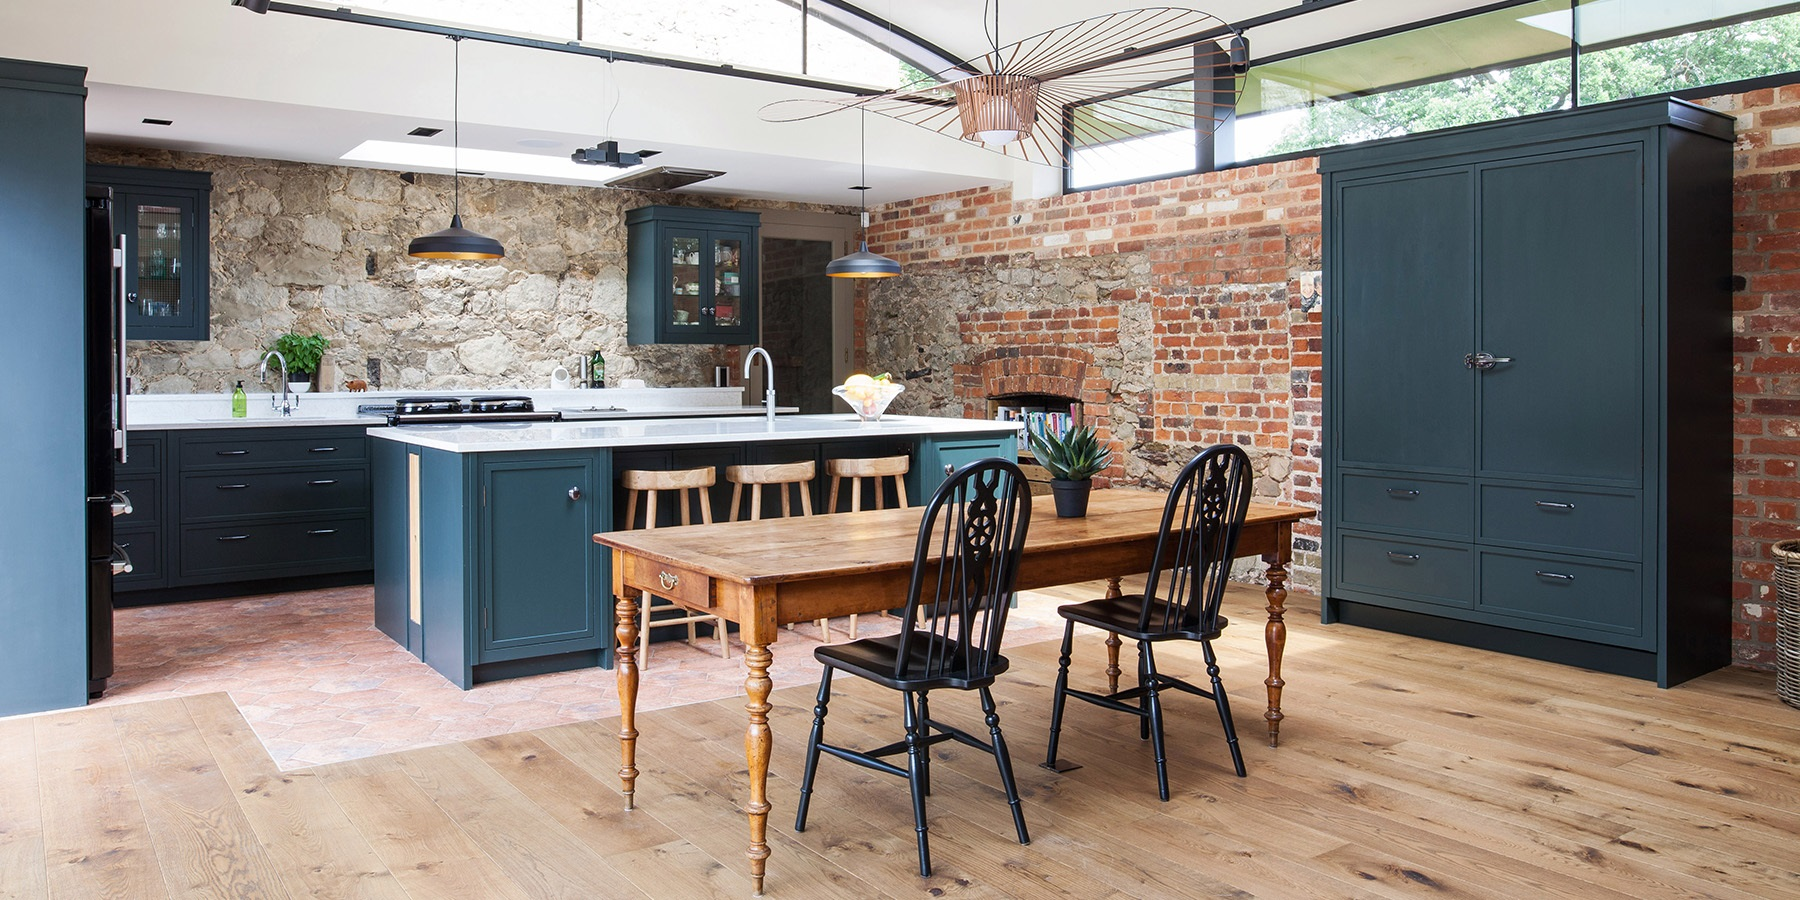 Bespoke Oast House Shaker Kitchen - Burlanes handmade Decolane kitchen with central kitchen island, freestanding larder and classic AGA Total Control.